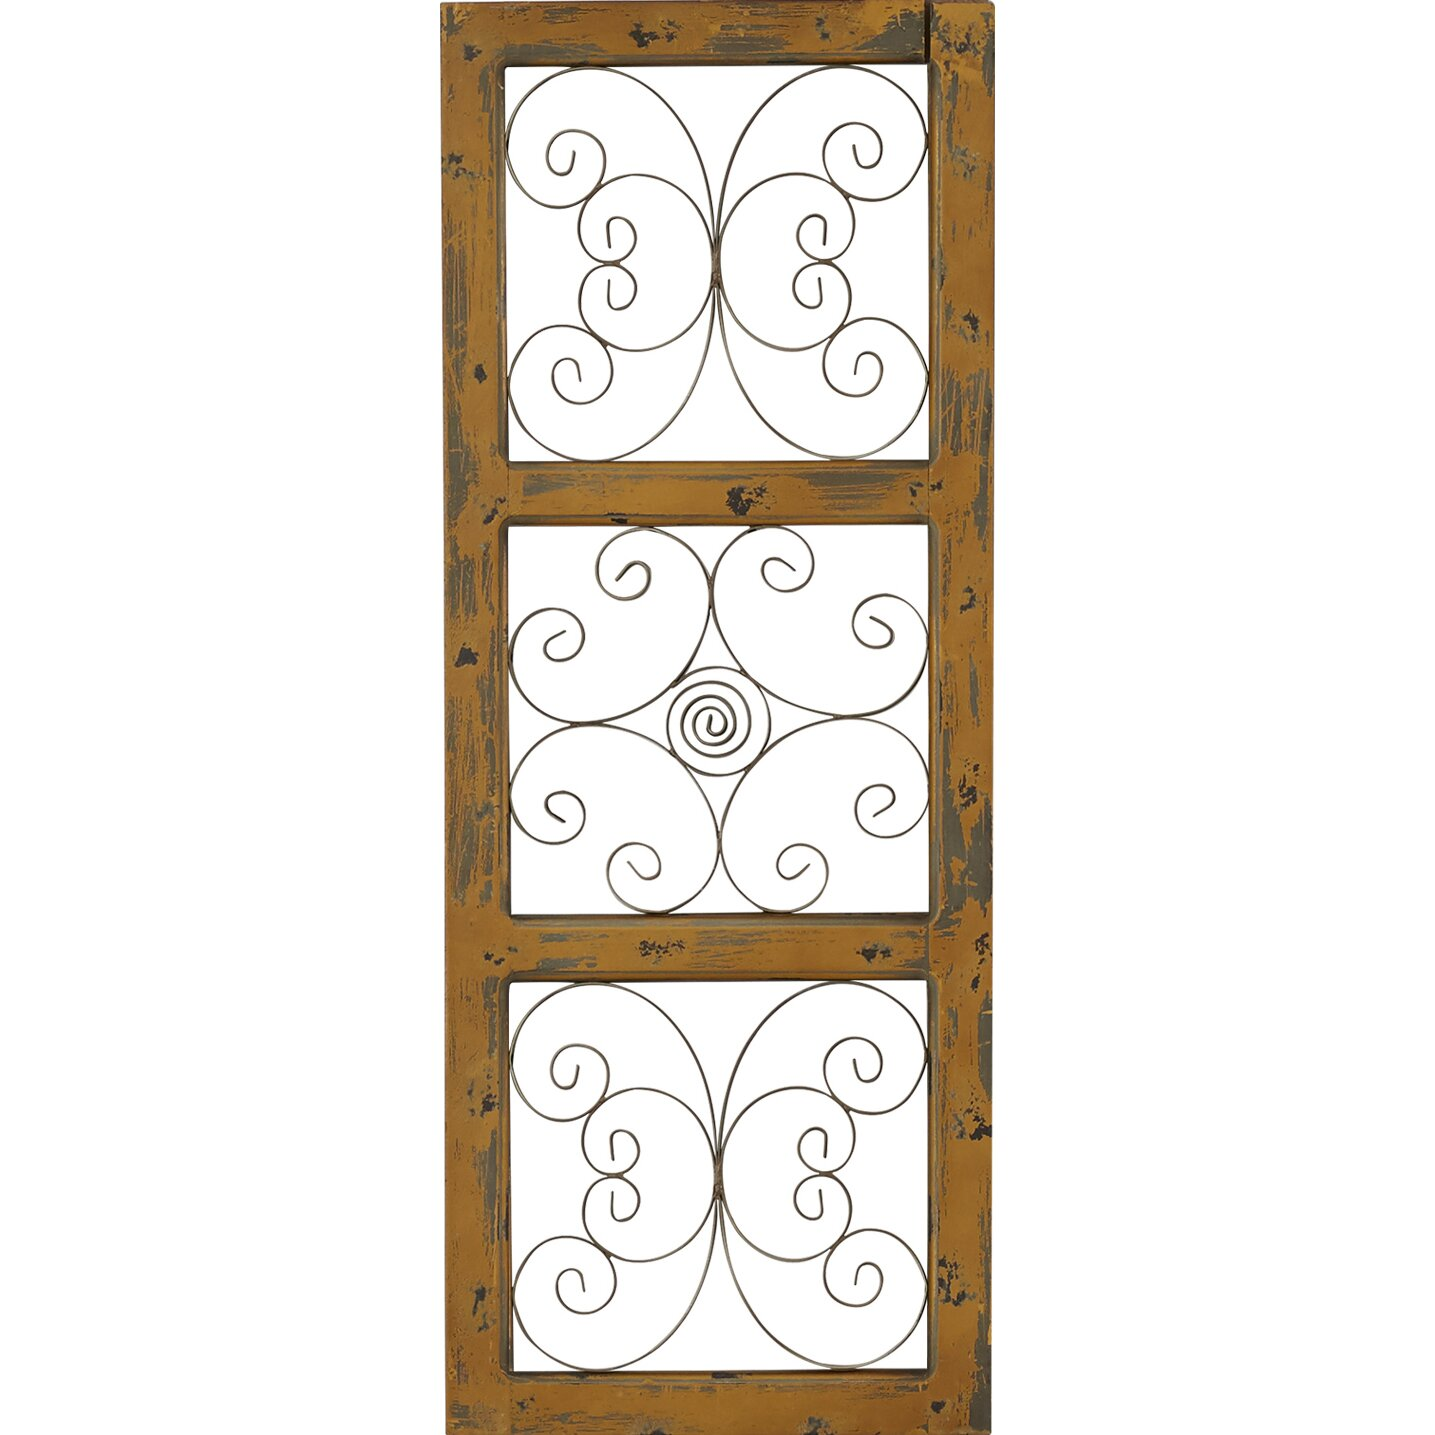 Wood And Metal Wall Decor Wood Metal Wall Decor Choice Image  Home Wall Decoration Ideas